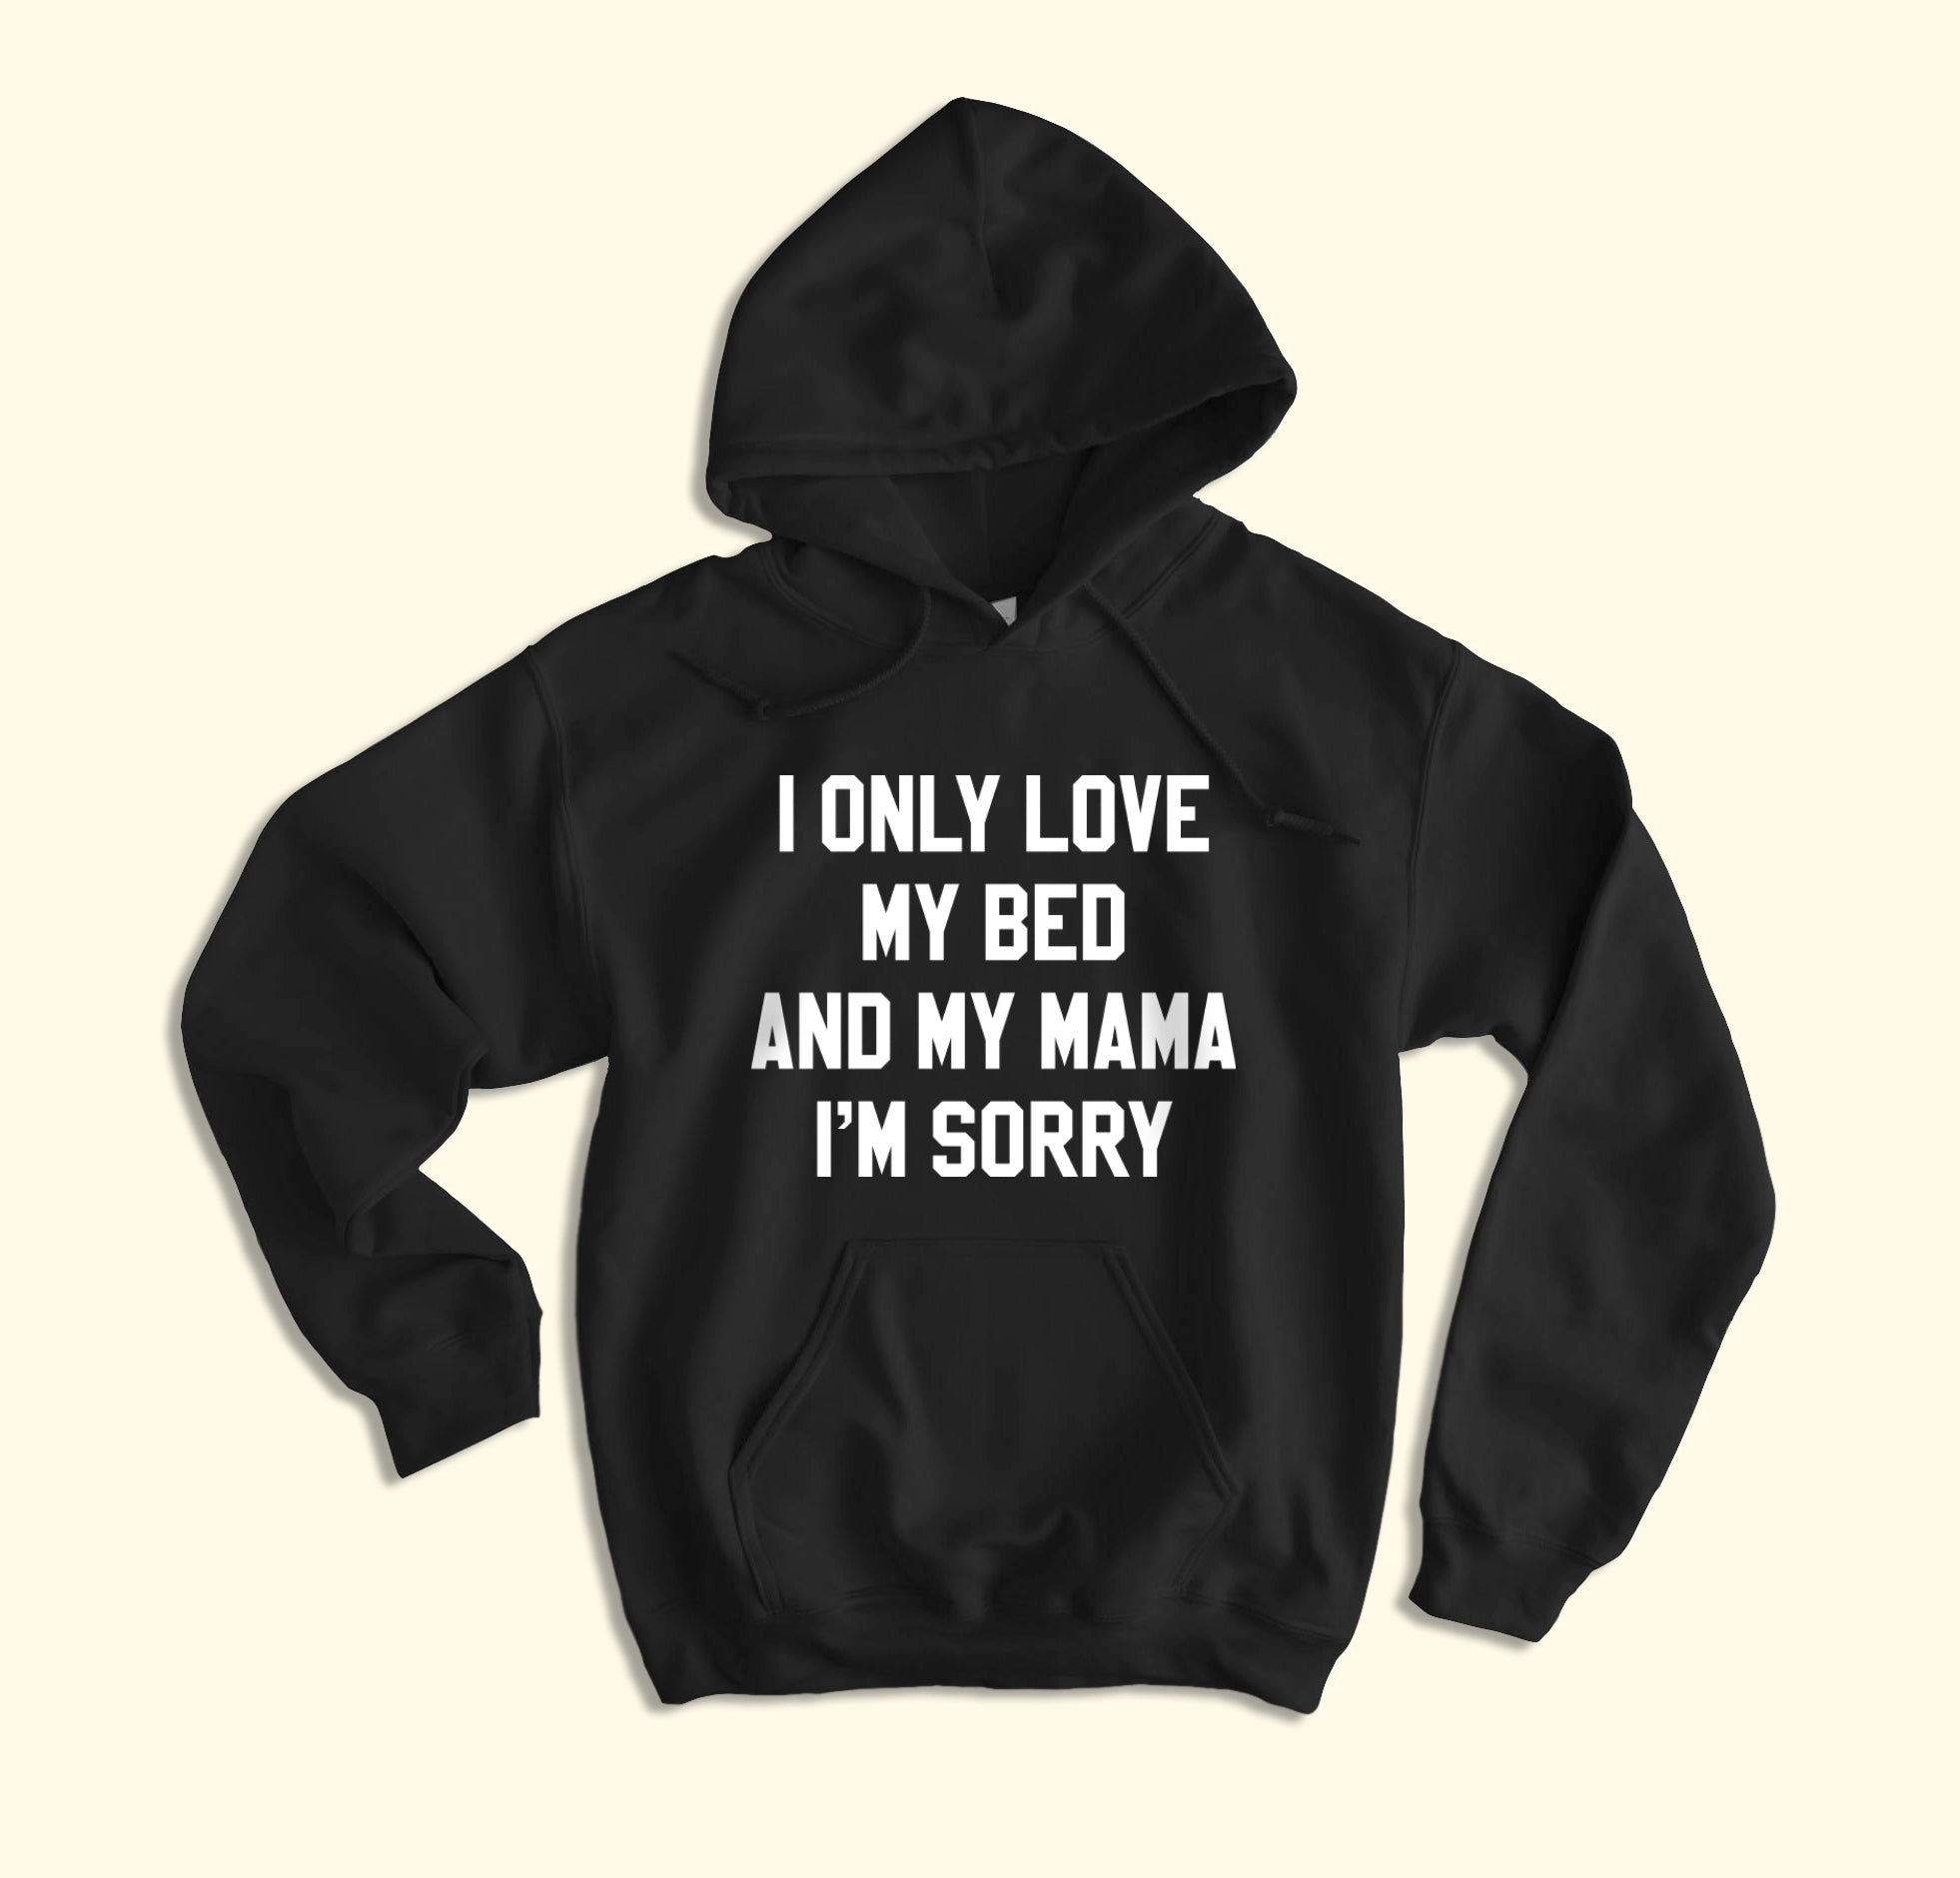 I Only Love My Bed And My Mama Hoodie